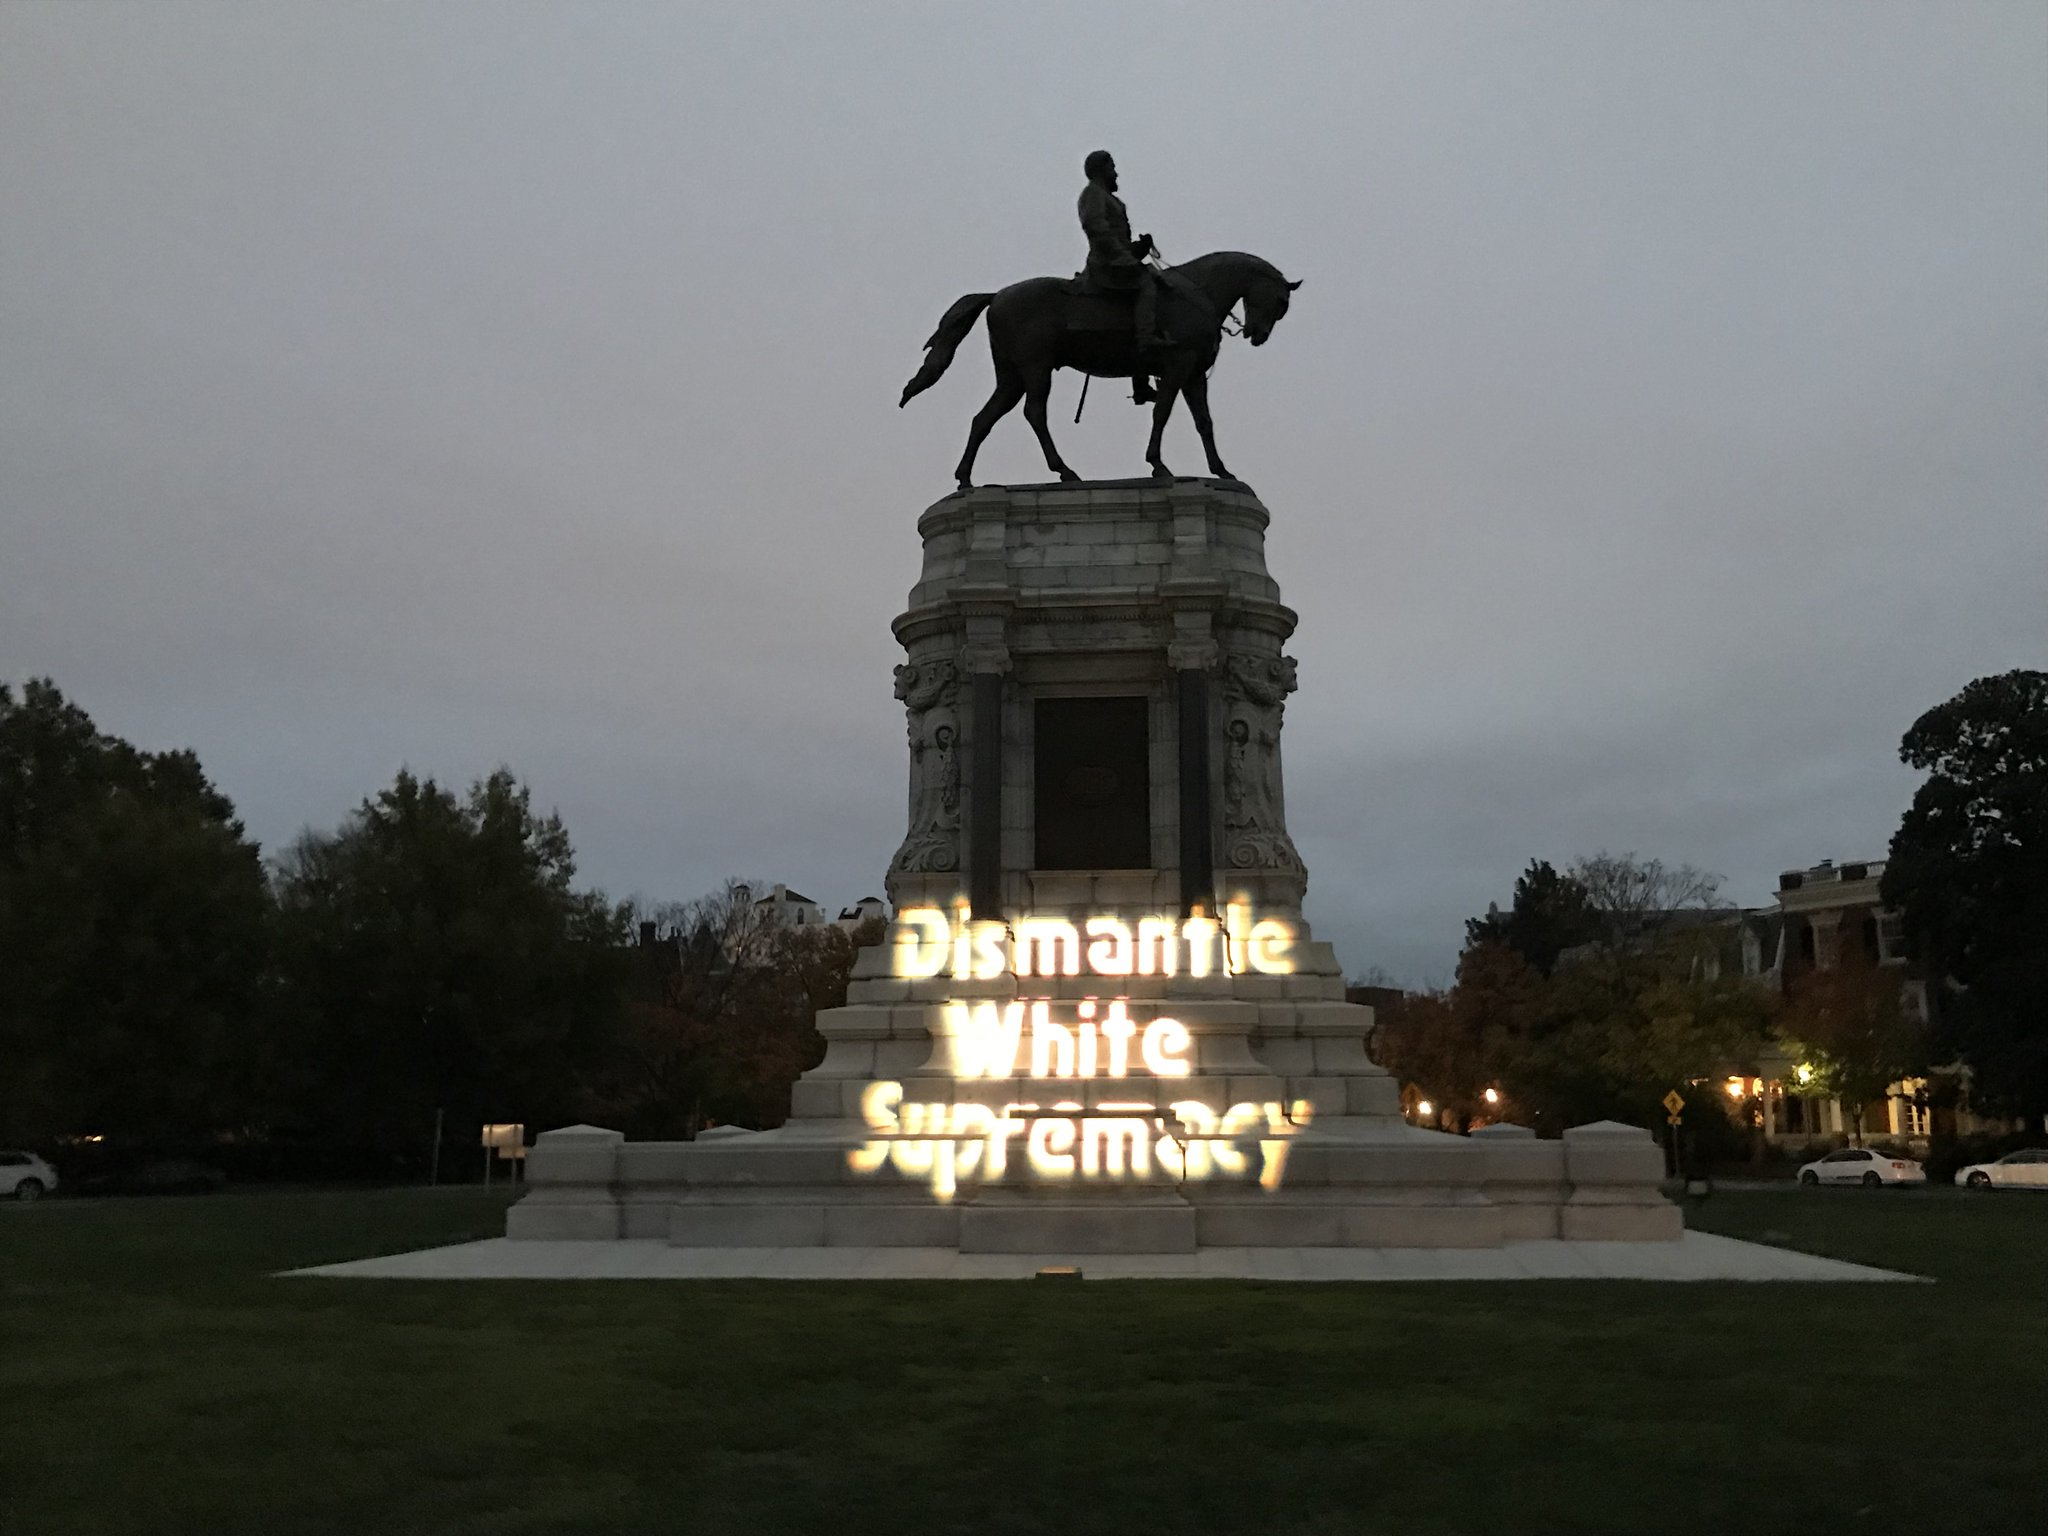 Protesters emblazoned Robert E. Lee statue with with guerrilla light projection messages, Dec. 7, 2017. (Richmond DSA, Flickr)